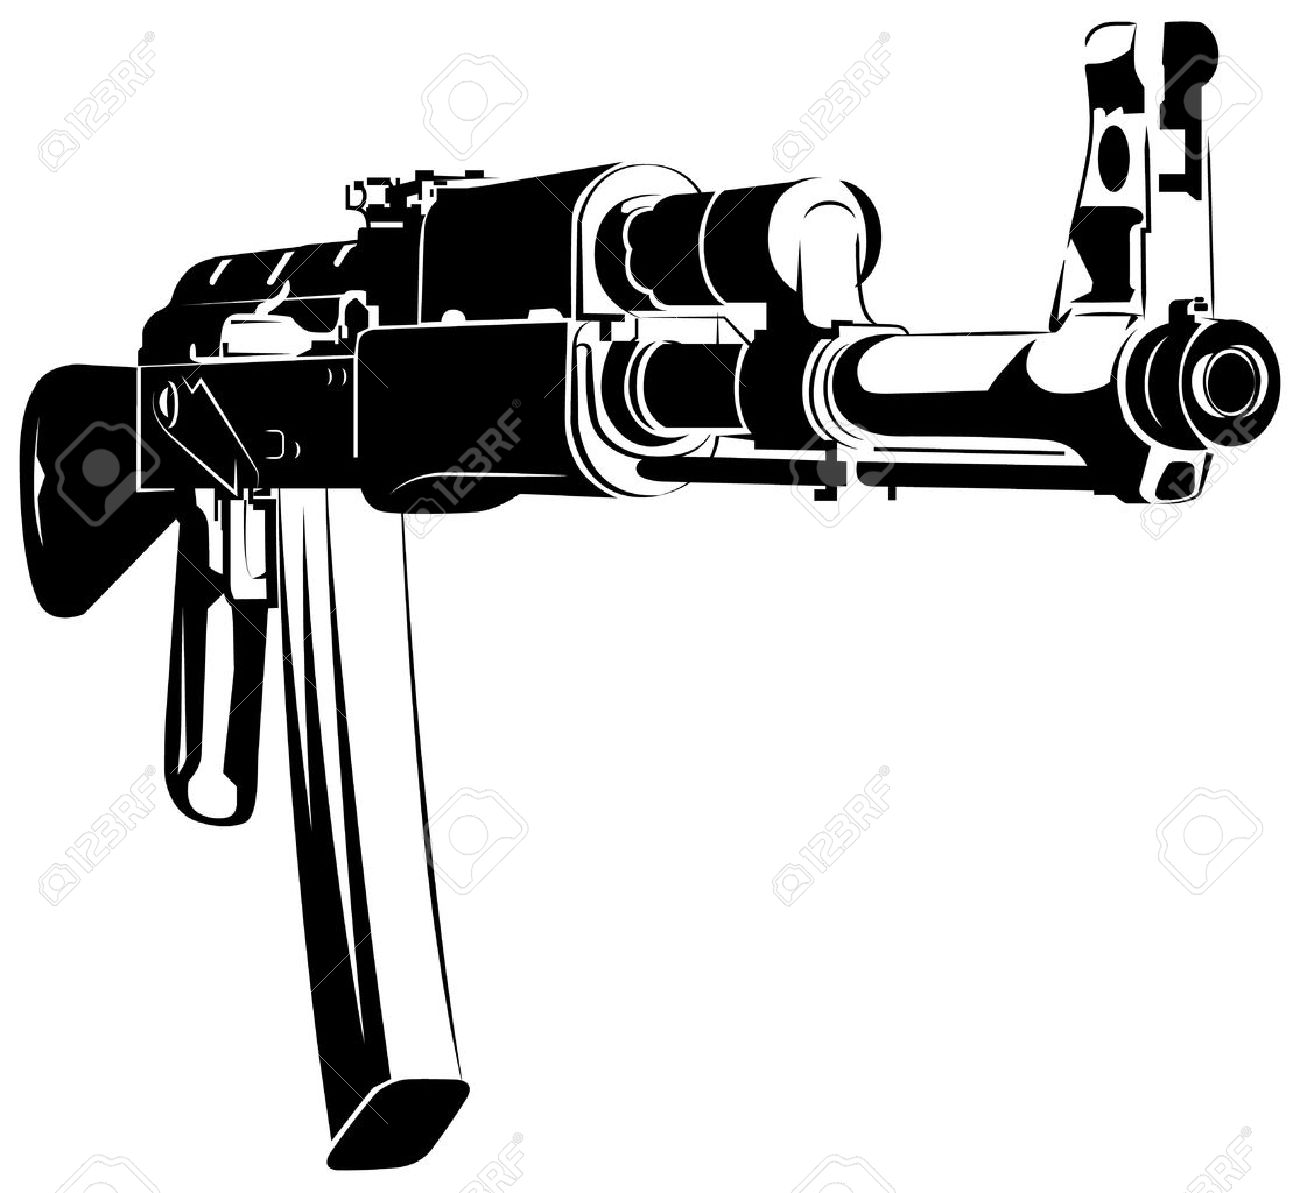 vector illustration black and white machine gun ak 47 isolated rh 123rf com ak 47 vector free ak 47 vector image